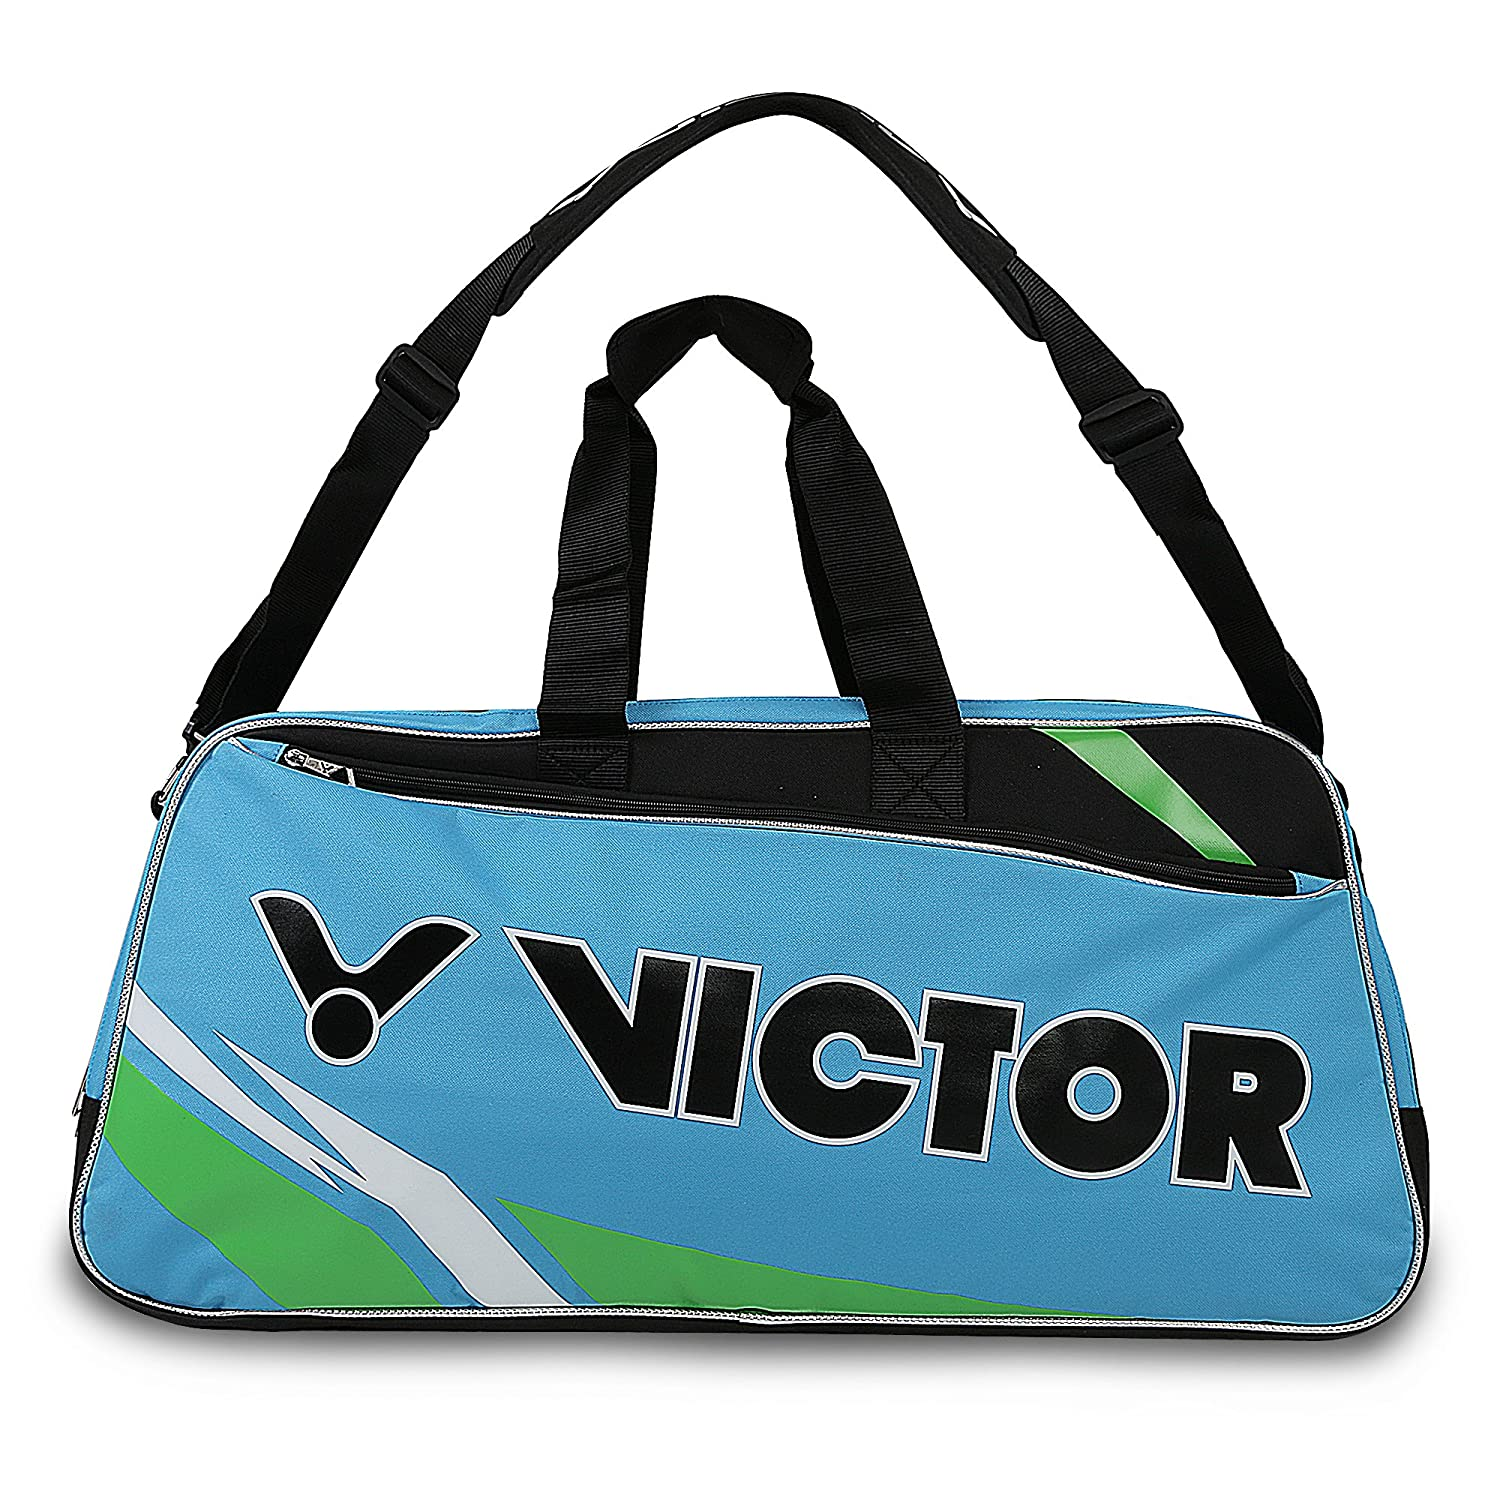 9fb40ecfa8 Buy Victor AG-510 Badminton Kit Bag in 2 Different Color (12Pcs Racket  Storage Space) (Blue Green) Online at Low Prices in India - Amazon.in